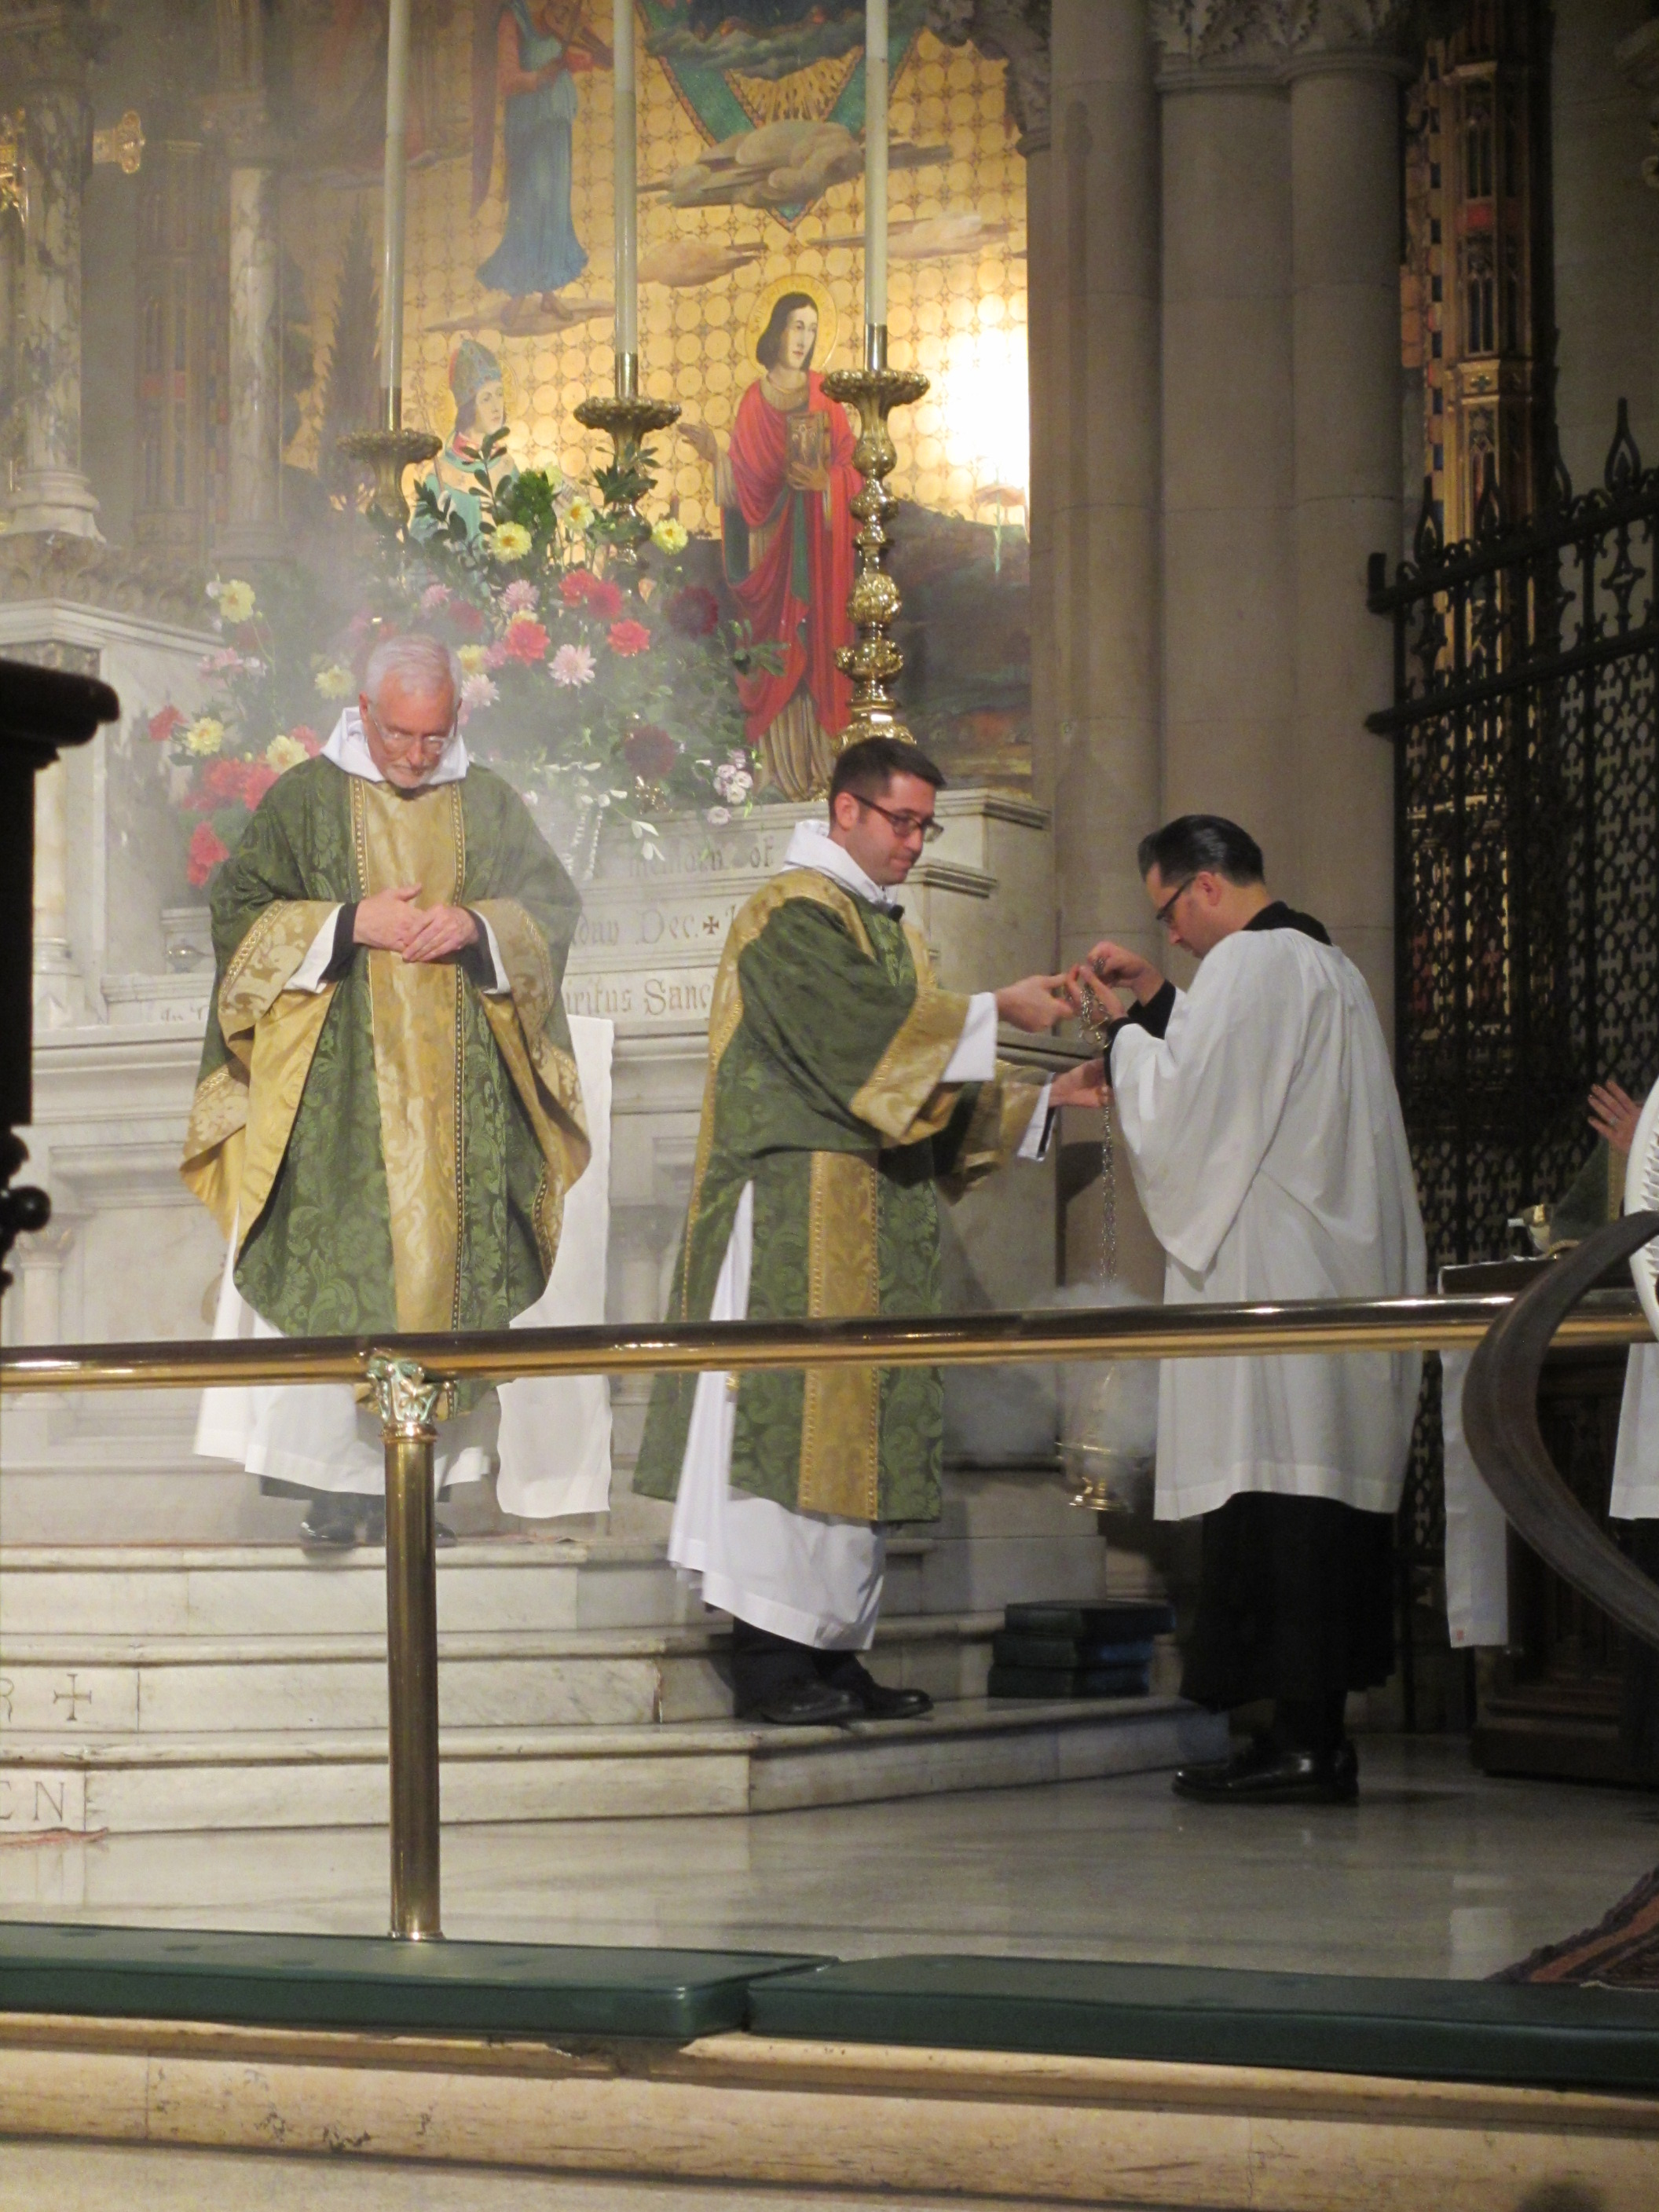 Having censed the altar, Father Pace prepares to chant the Collect of the Day.